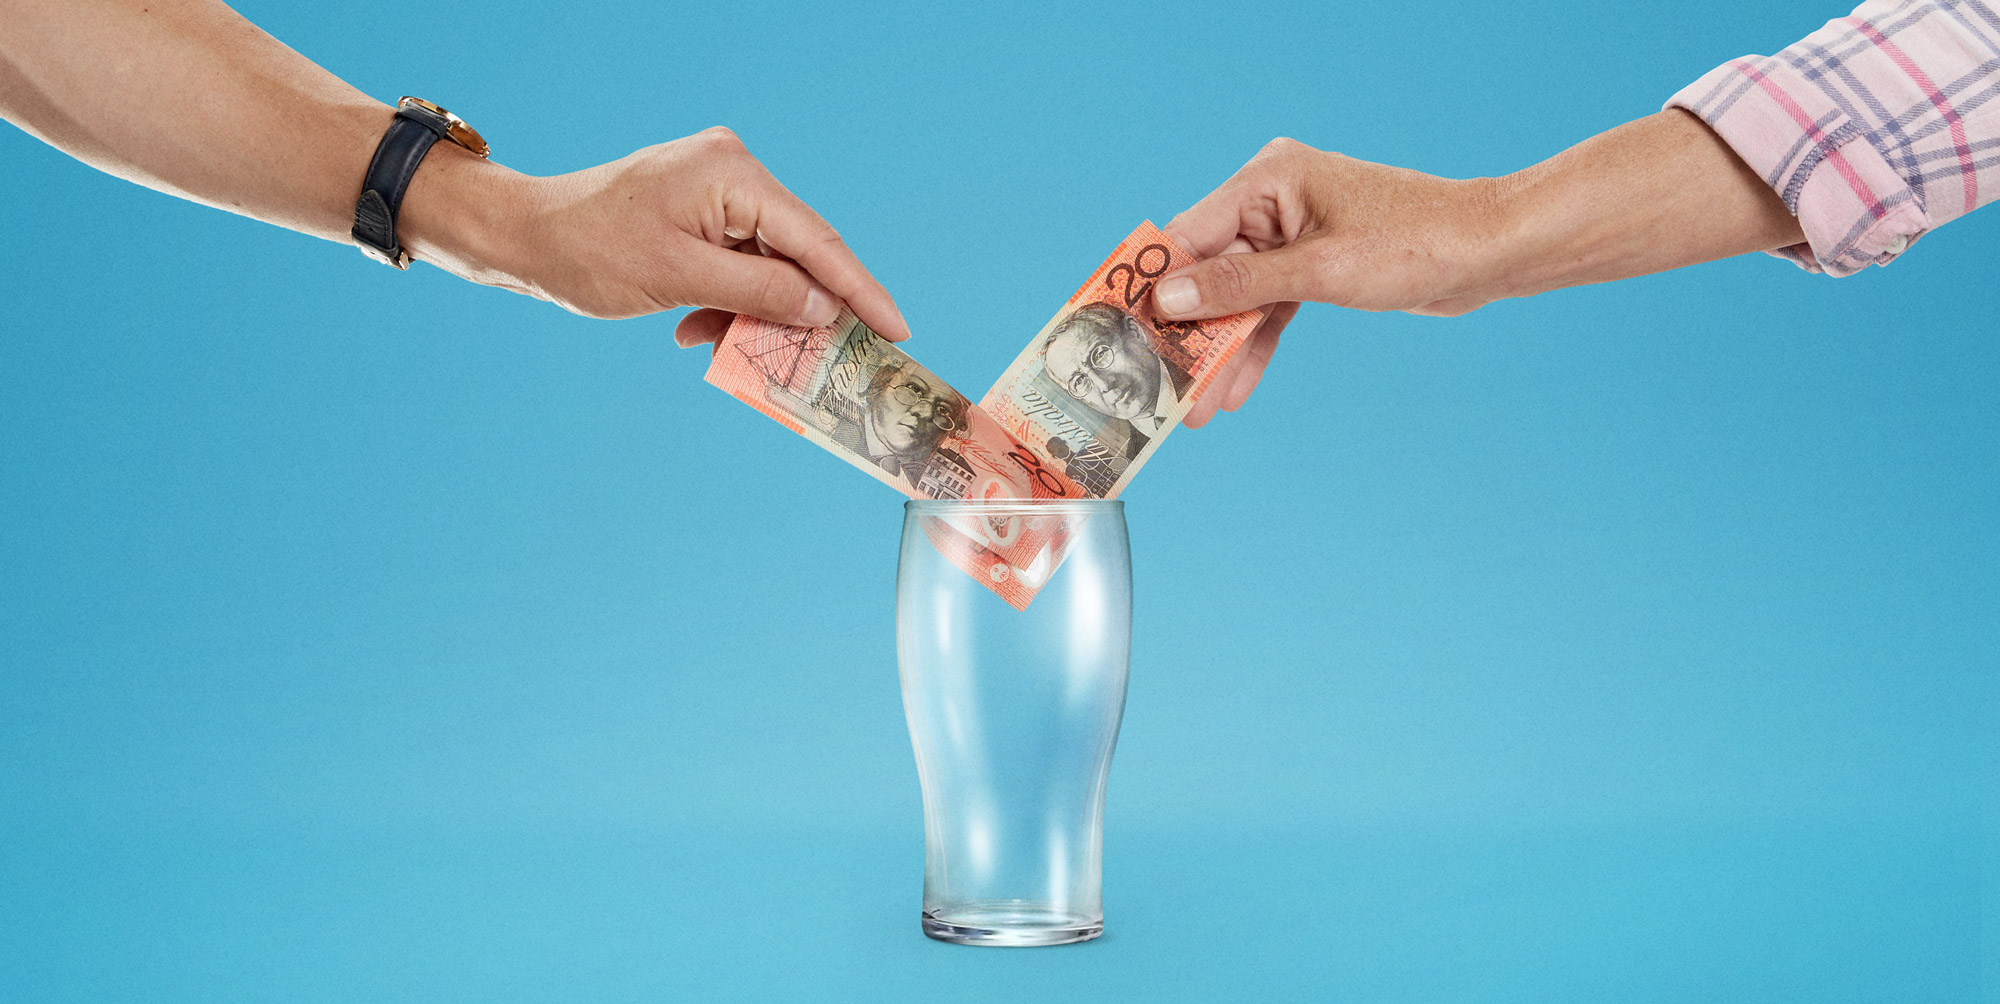 Hands placing money into a beer glass